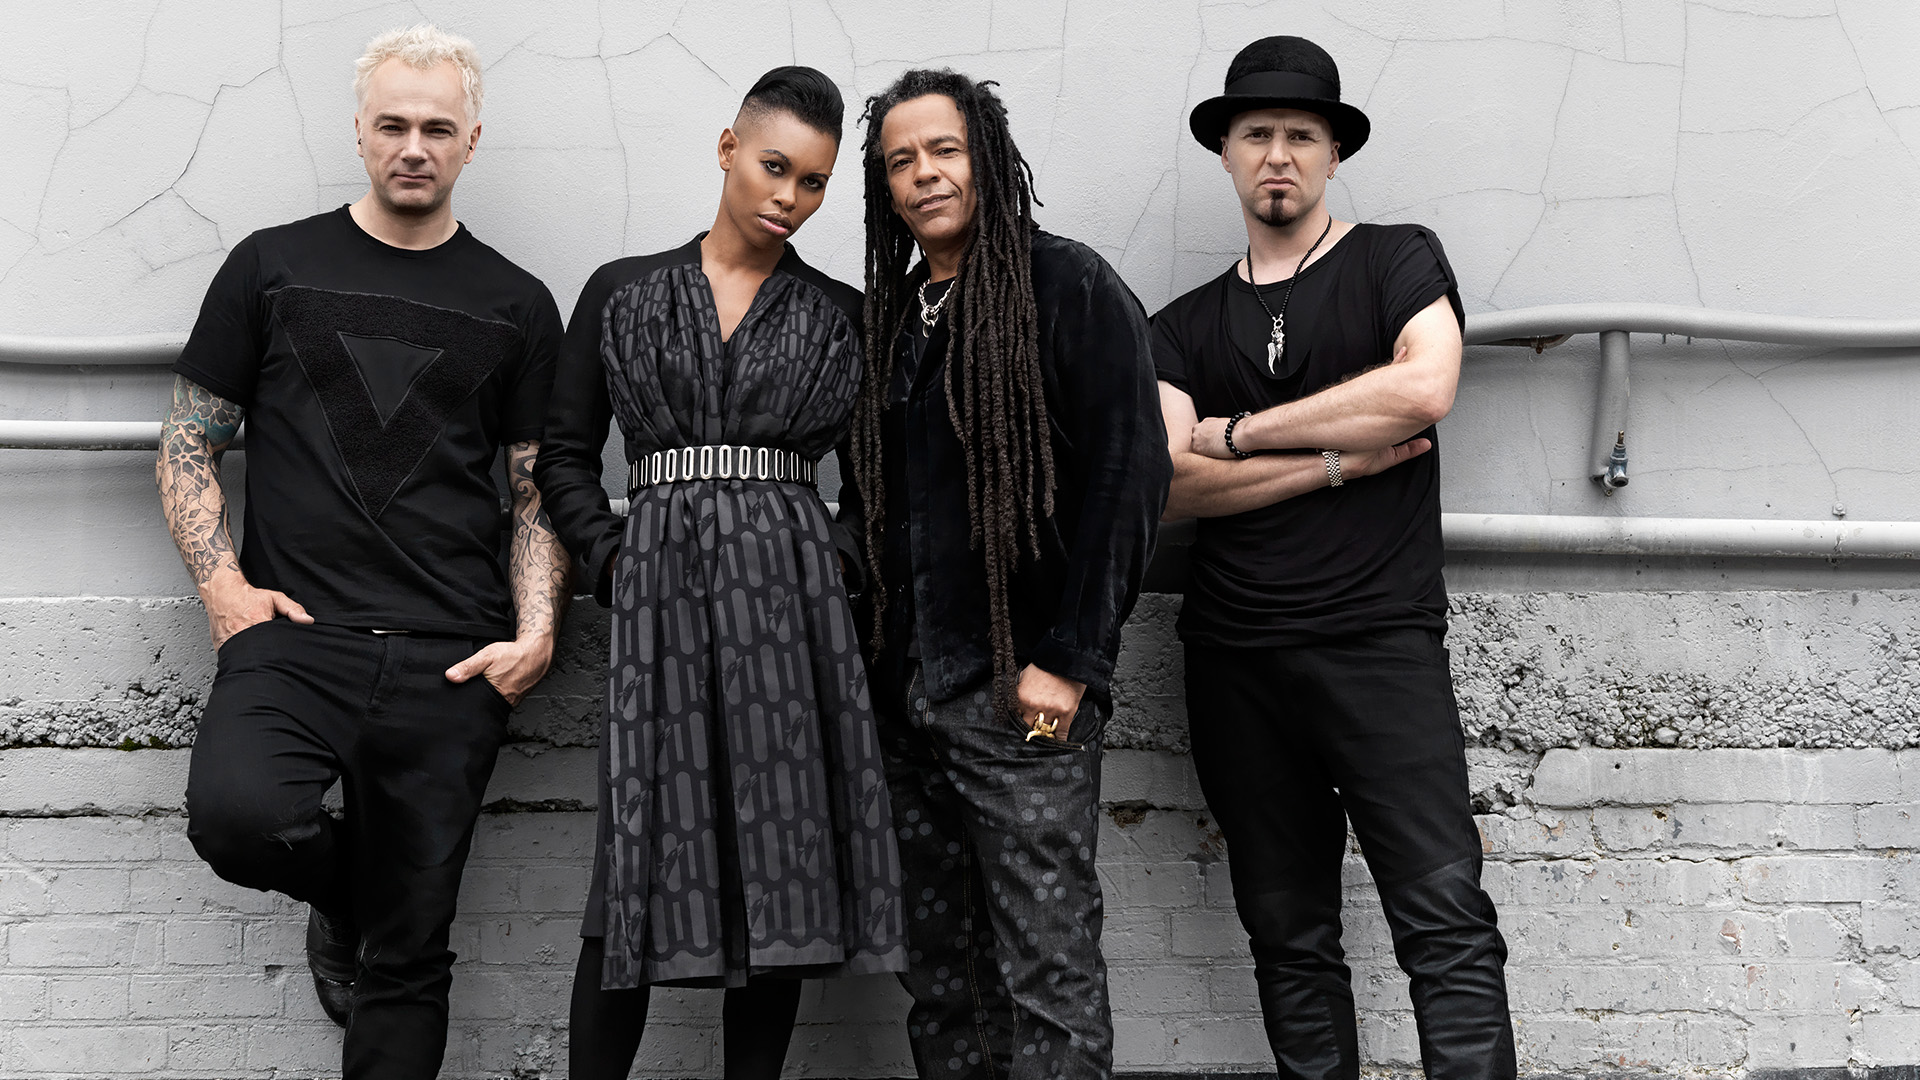 I Hope You Get To Meet Your Hero av Skunk Anansie